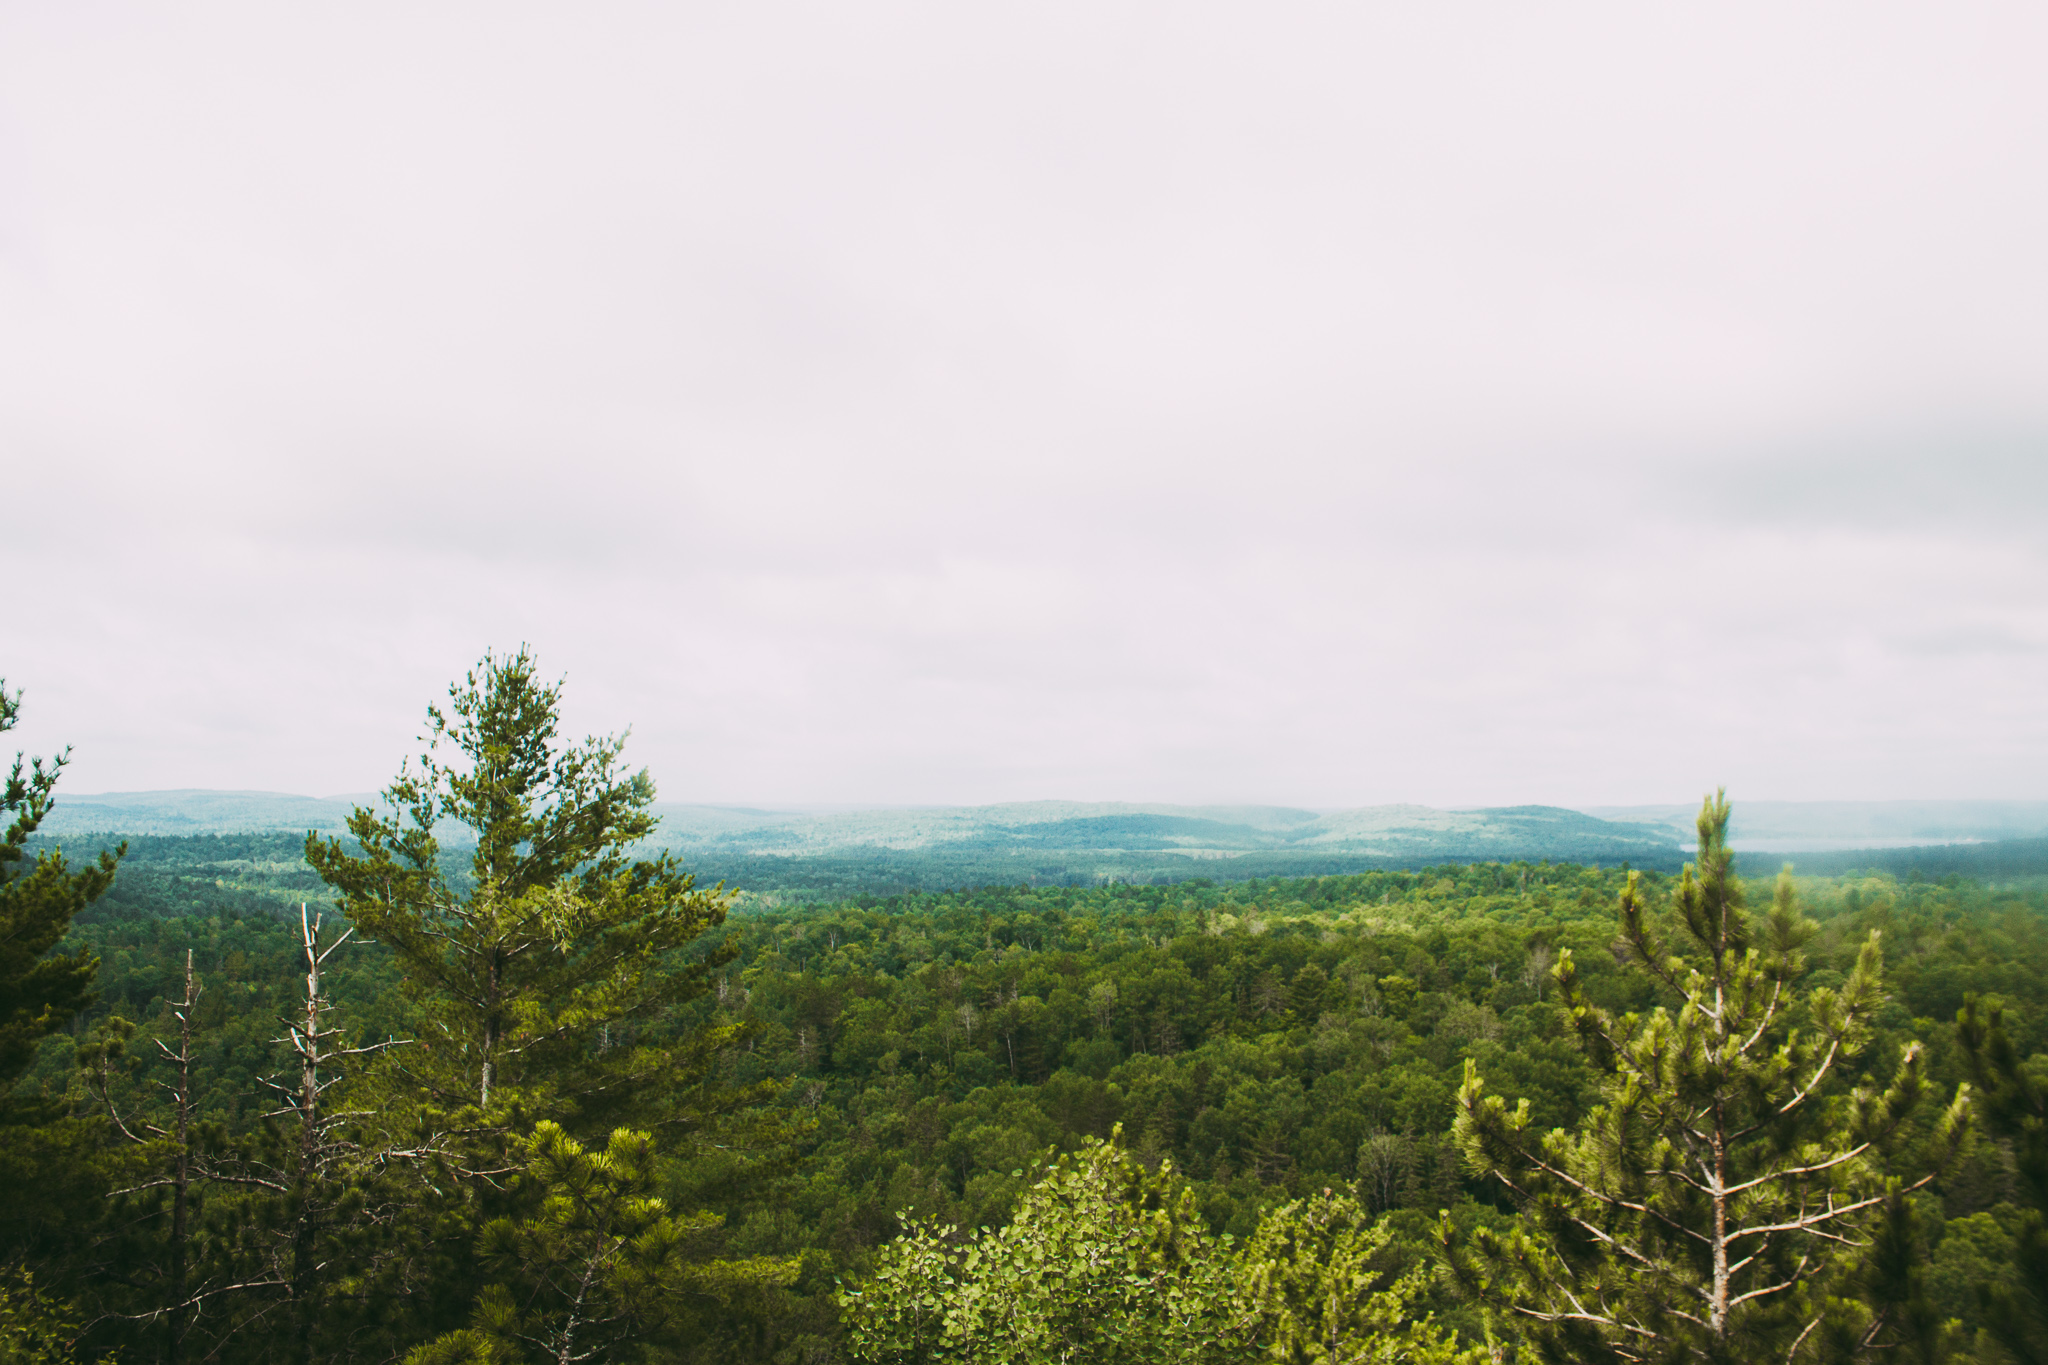 View from Lookout in Algonquin Park